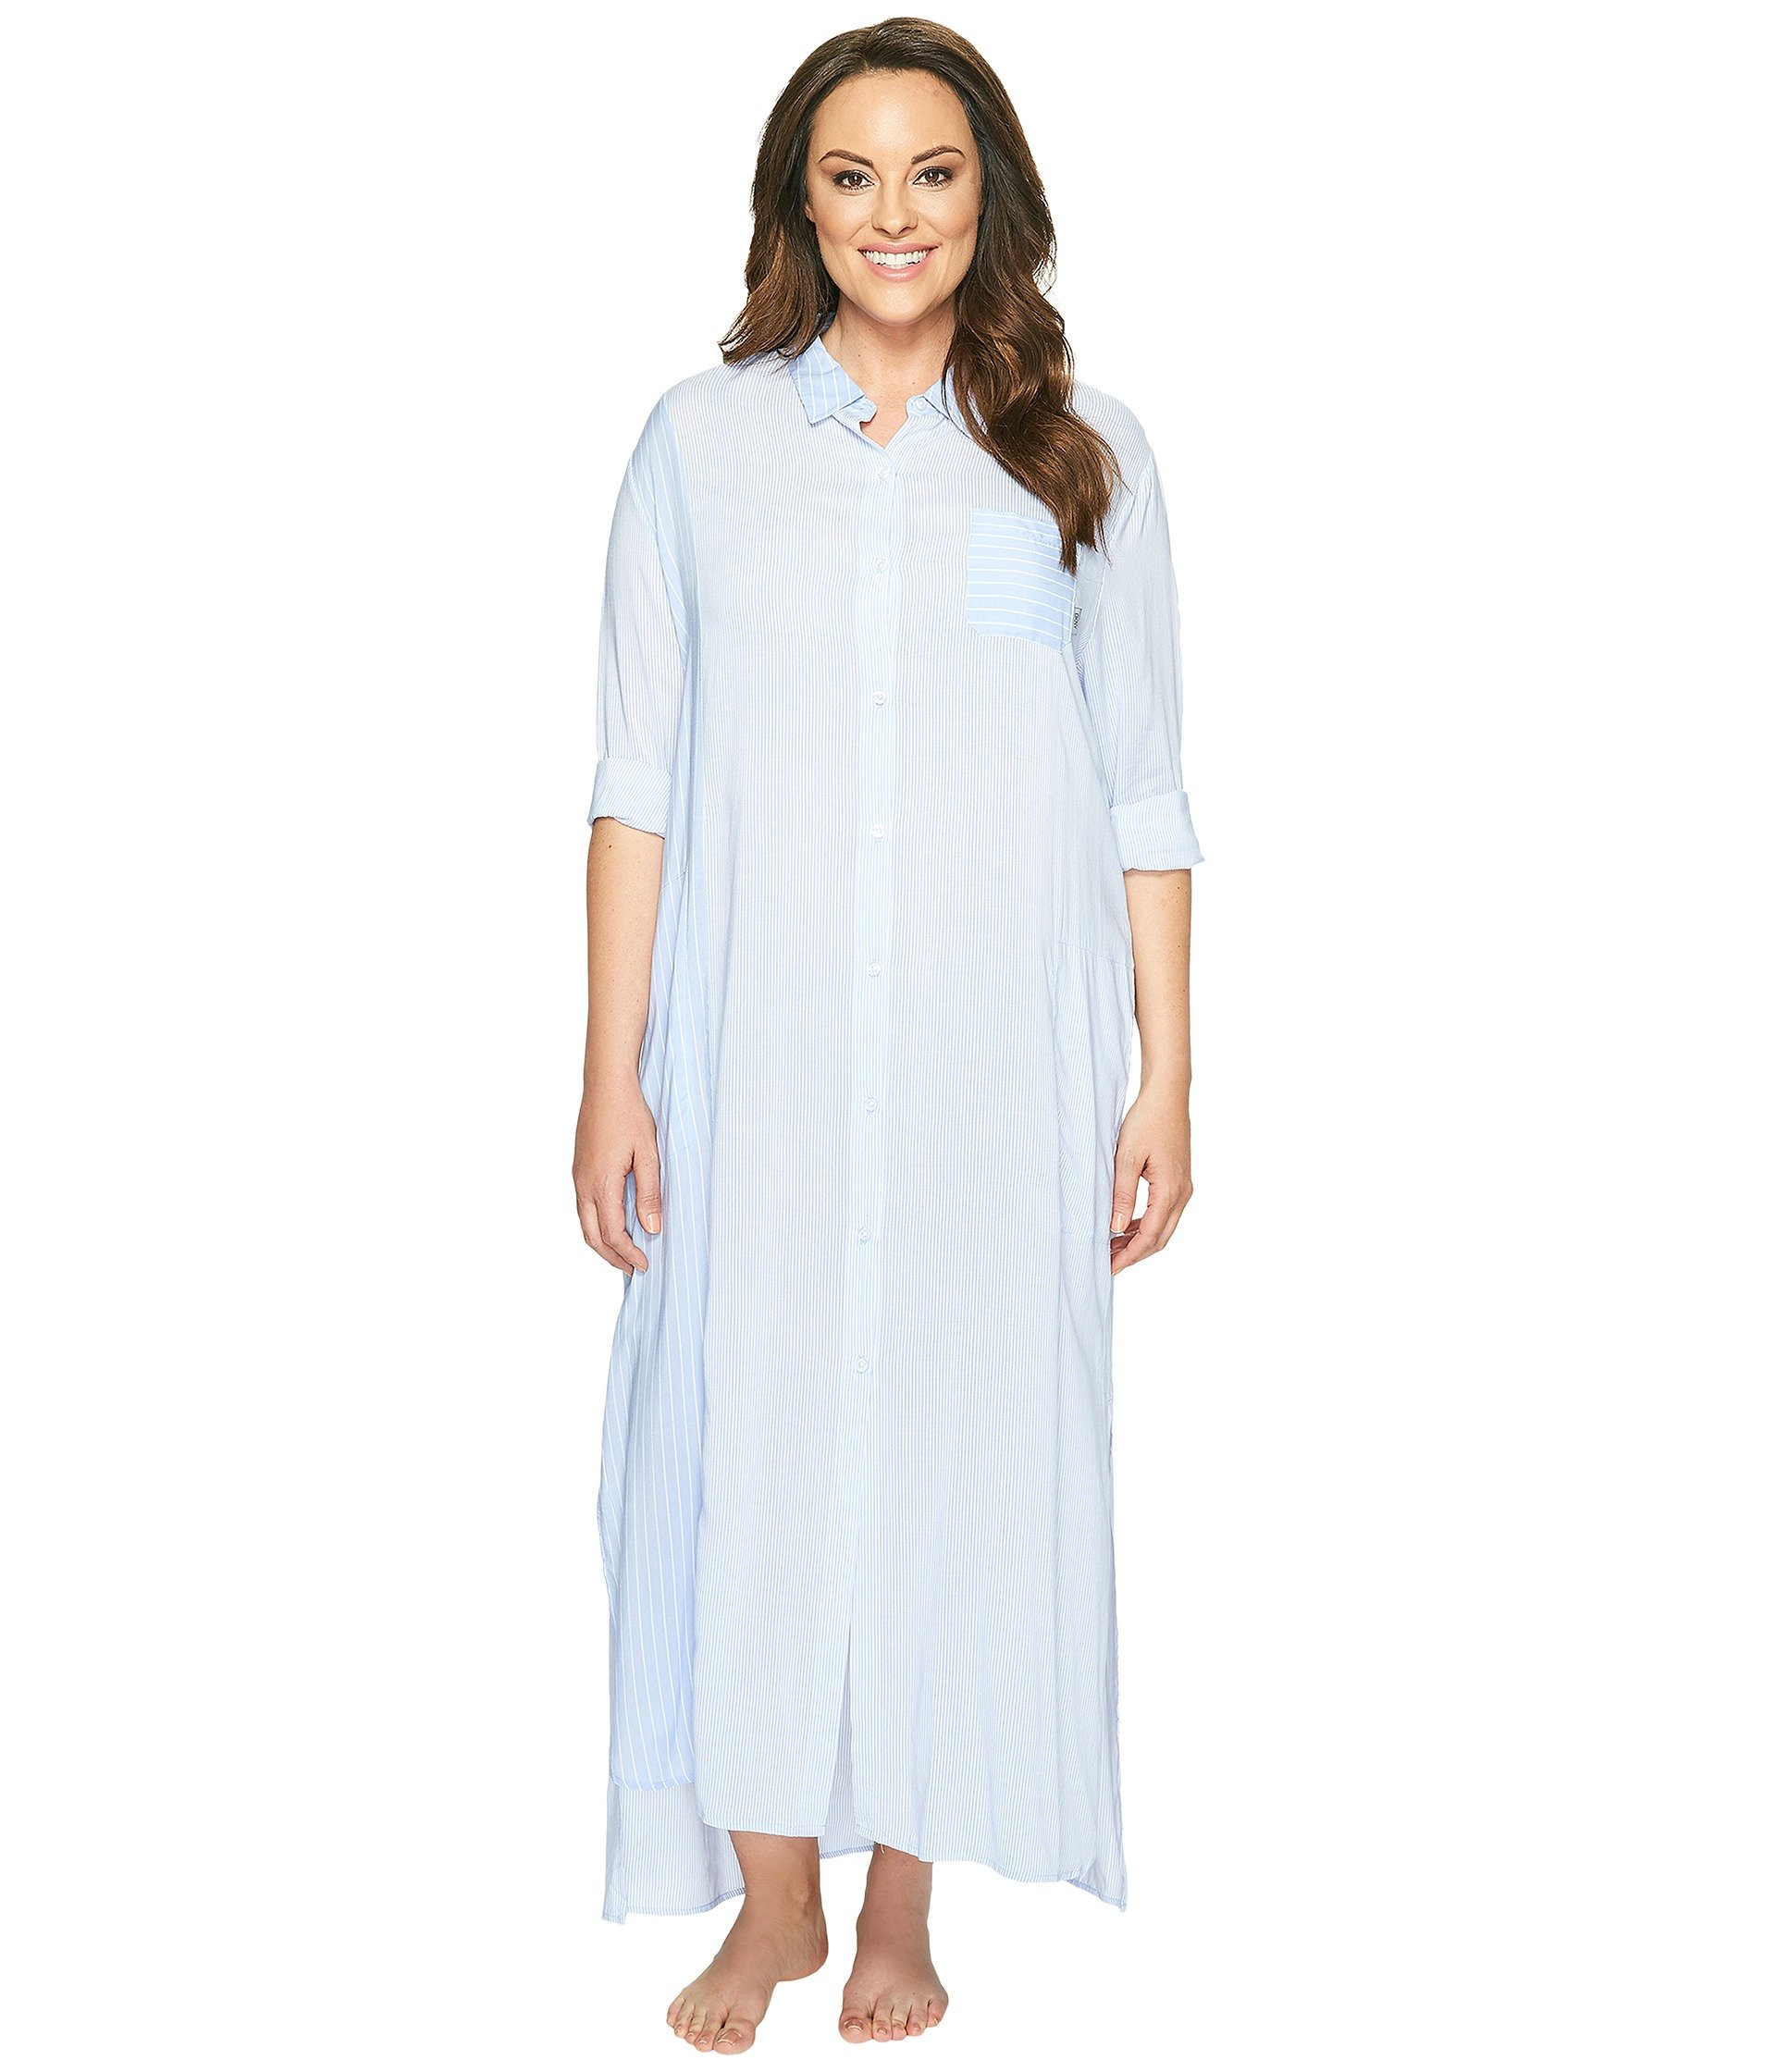 Babydoll DKNY Plus Size Fashion Long Sleeve Maxi Robe  + DKNY en VeoyCompro.net